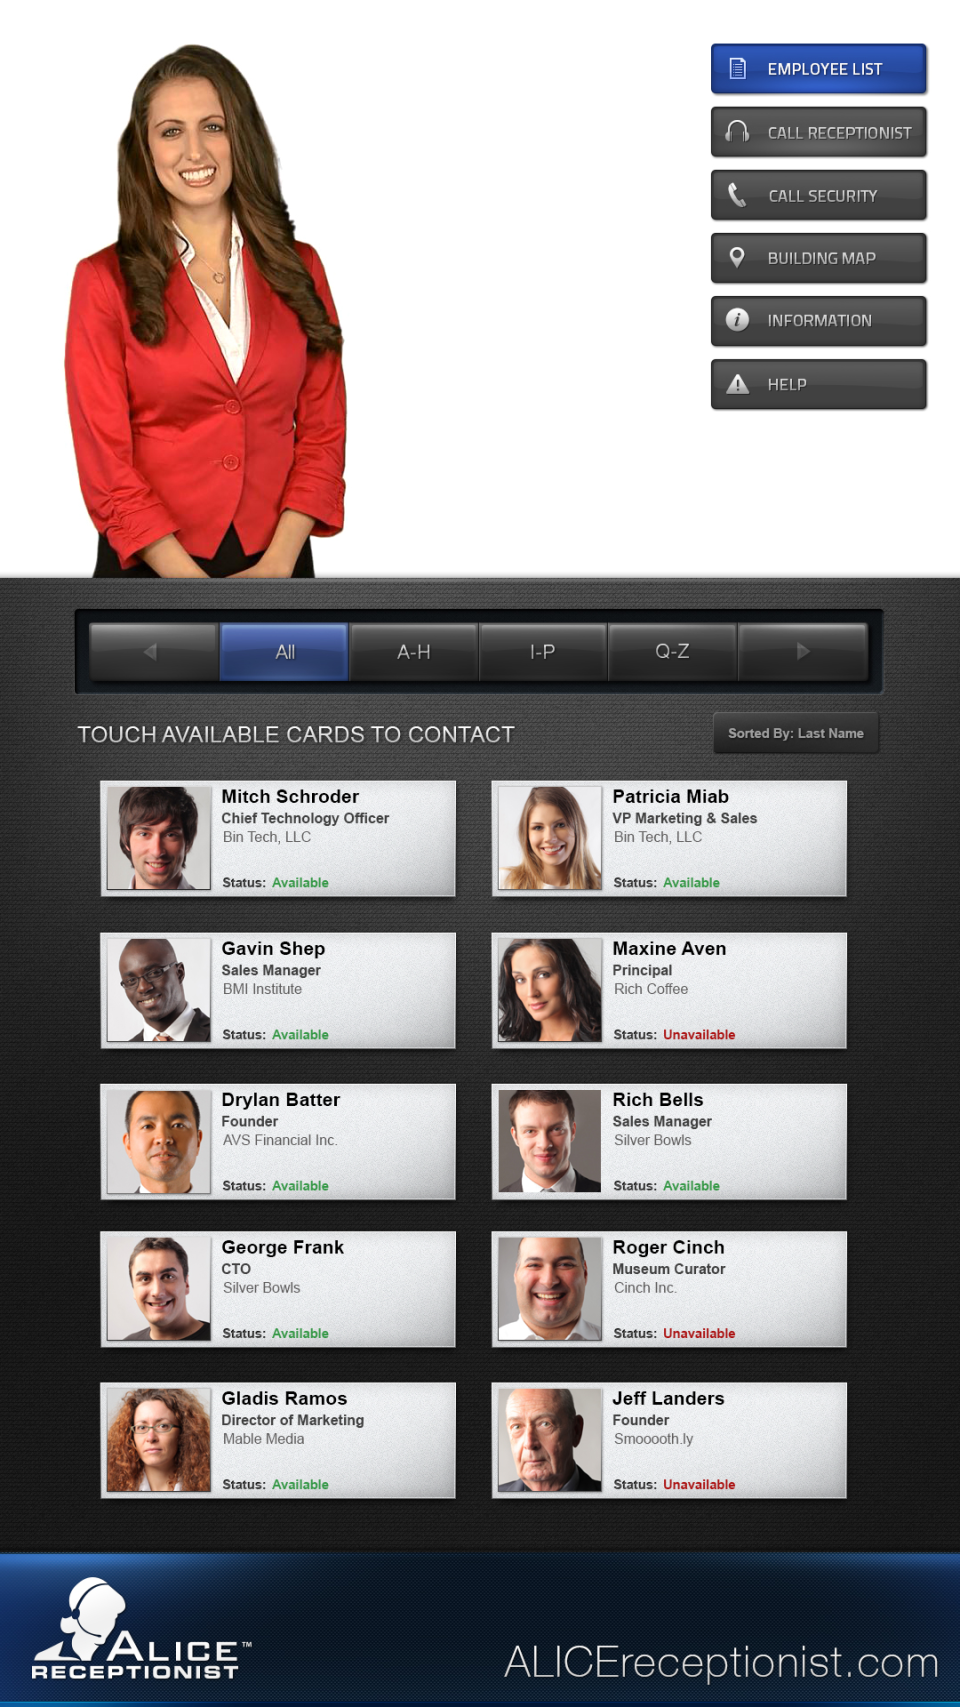 Visitors are able to view a list of employees in order to communicate with them or alert them of their arrival